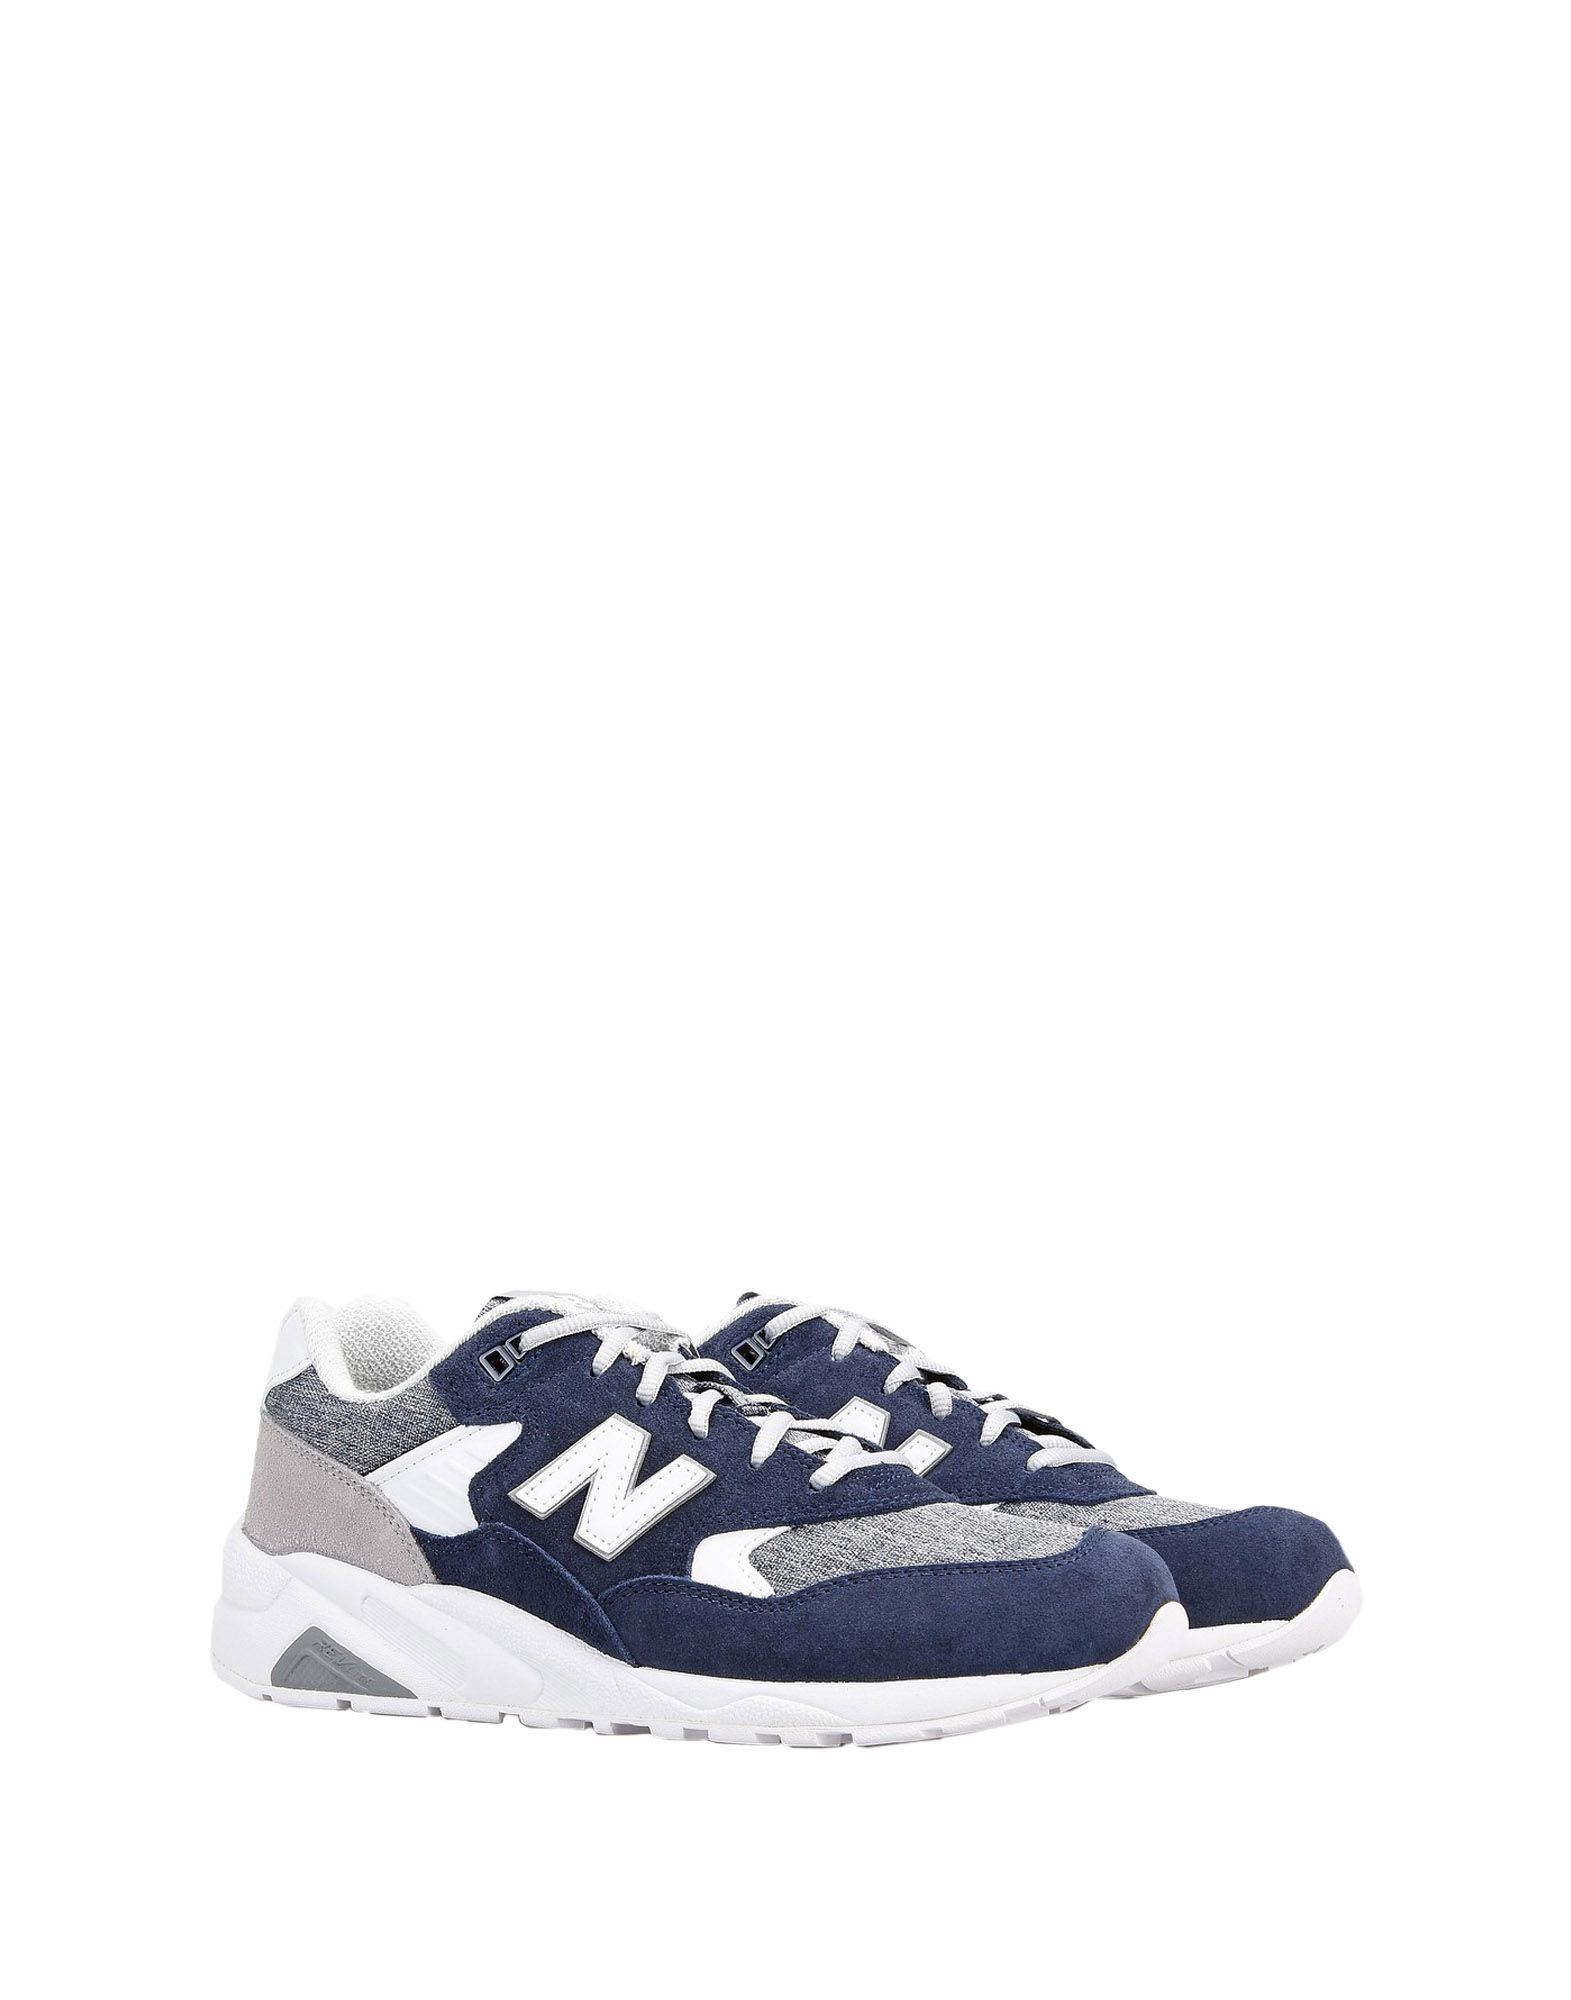 Sneakers New Balance 580 90S Luxury Pack - Homme - Sneakers New Balance sur